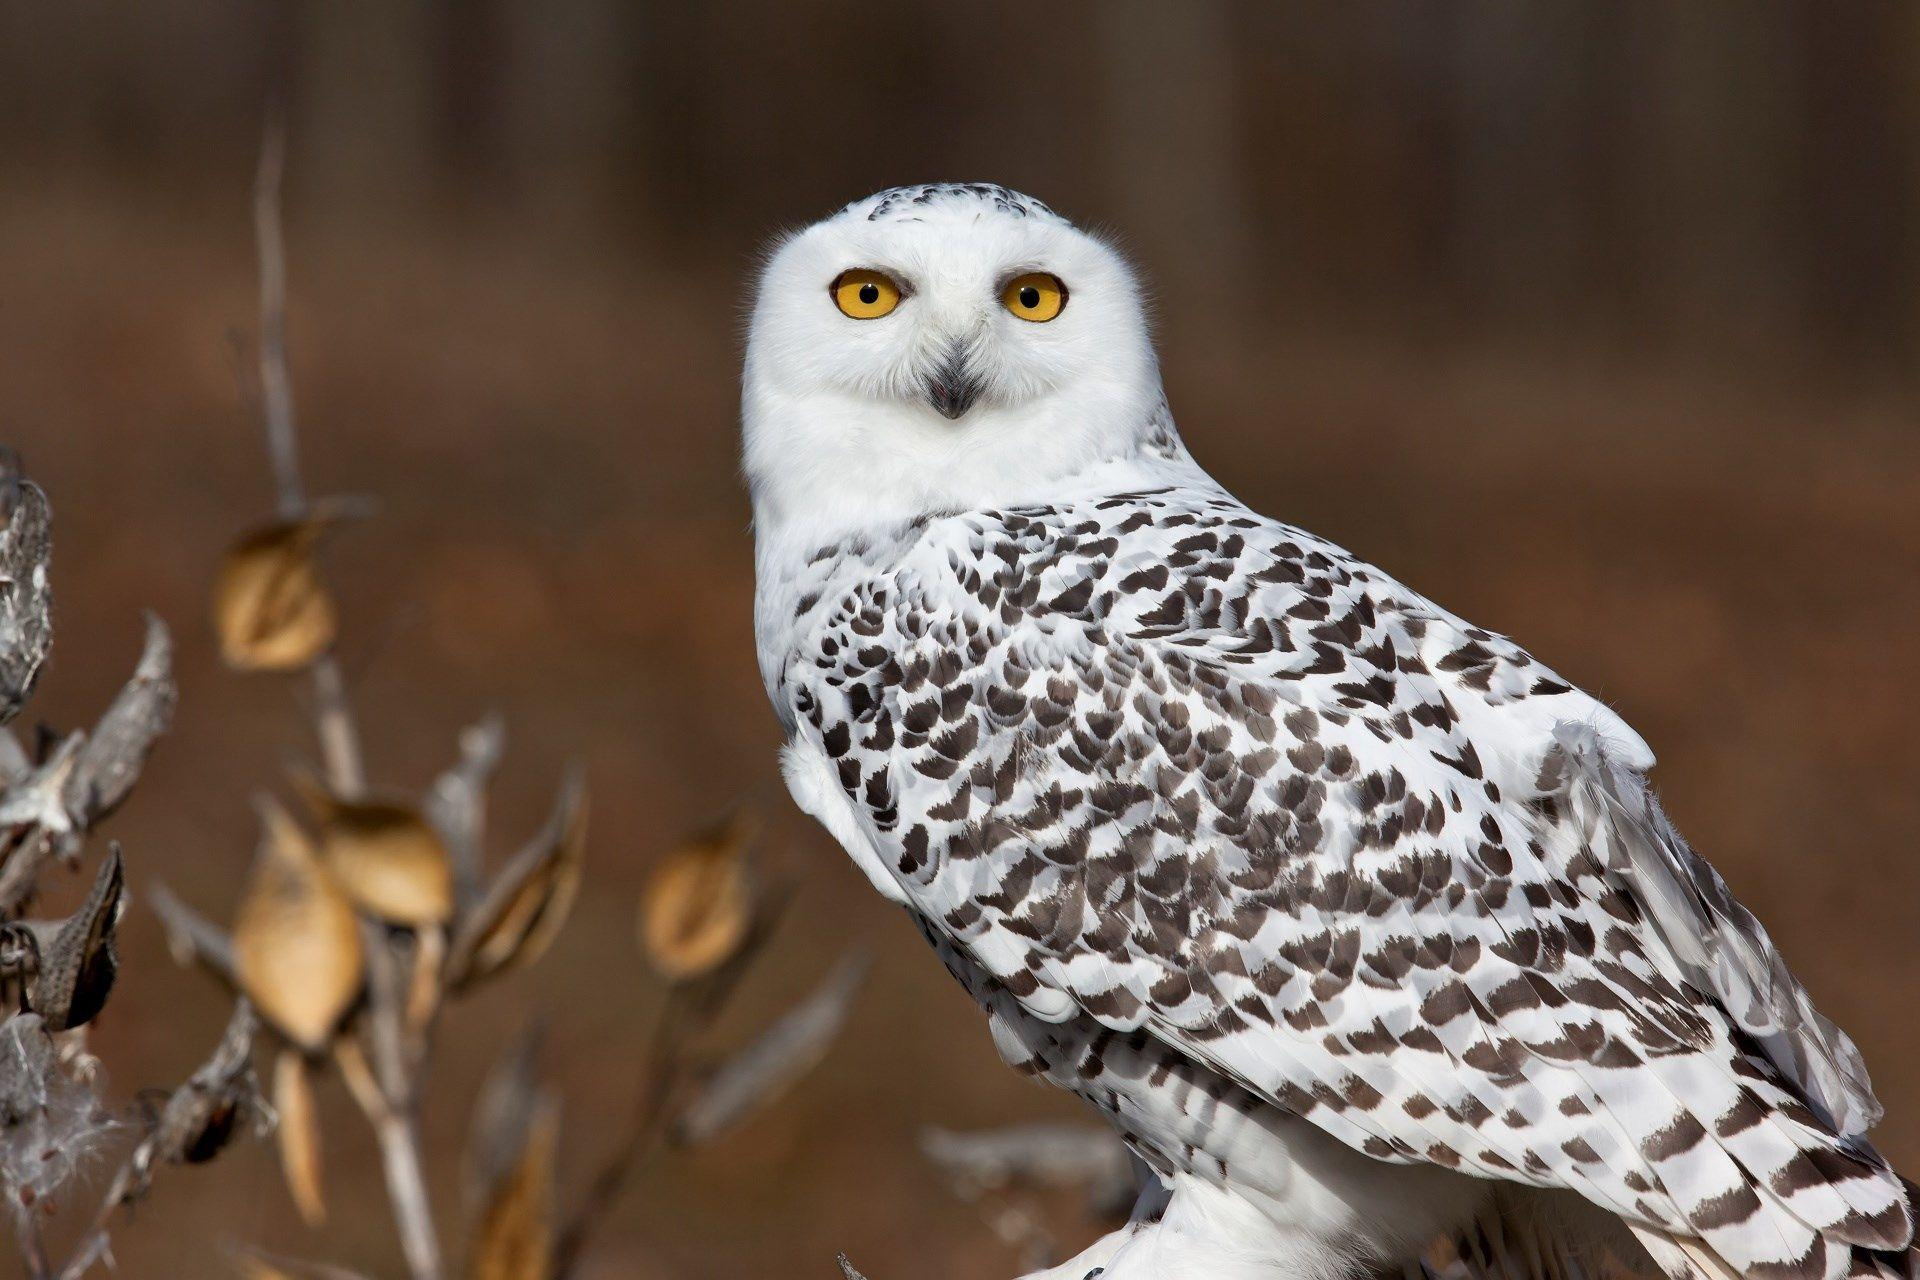 Brooks Stevenson - snowy owl wallpapers 1080p high quality ...